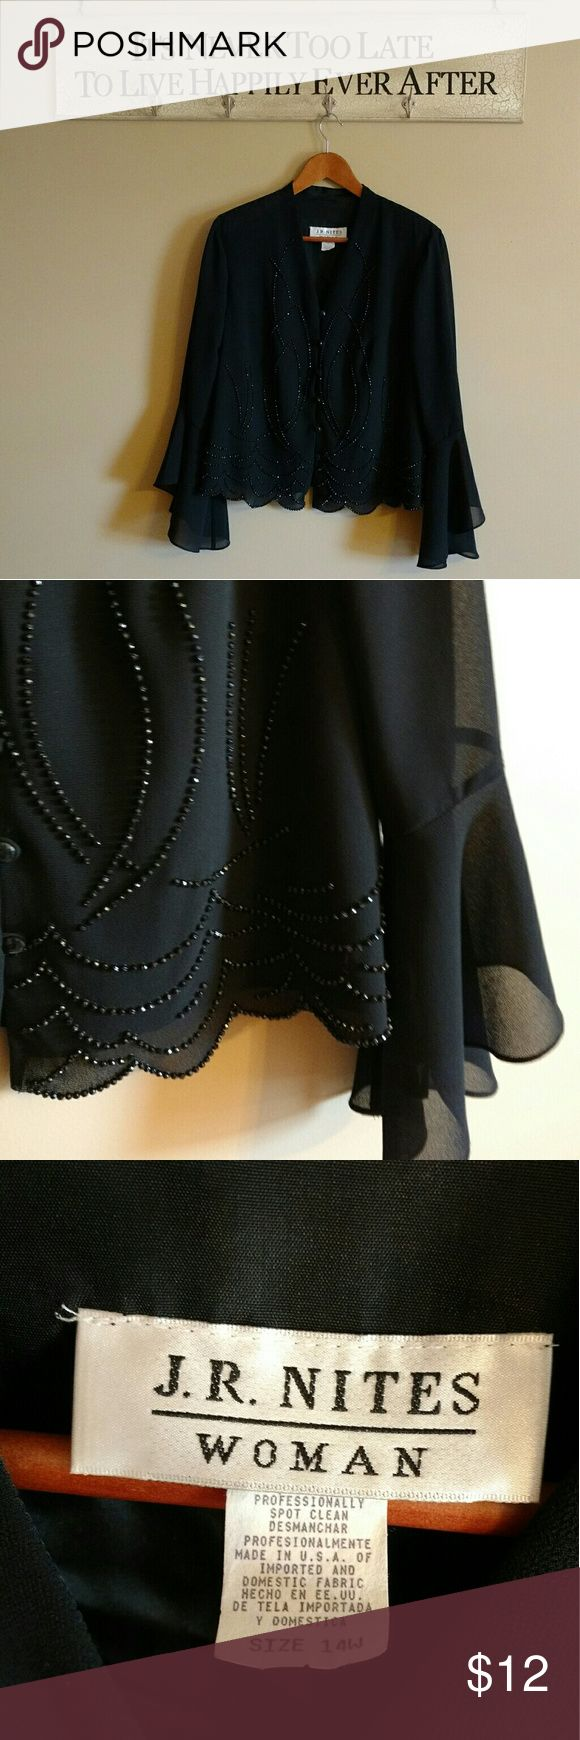 Bell Sleeve Chiffon Jacket Beautiful black chiffon bell sleeve jacket with jet black studded detail. J.R. Nites Woman Jackets & Coats Blazers